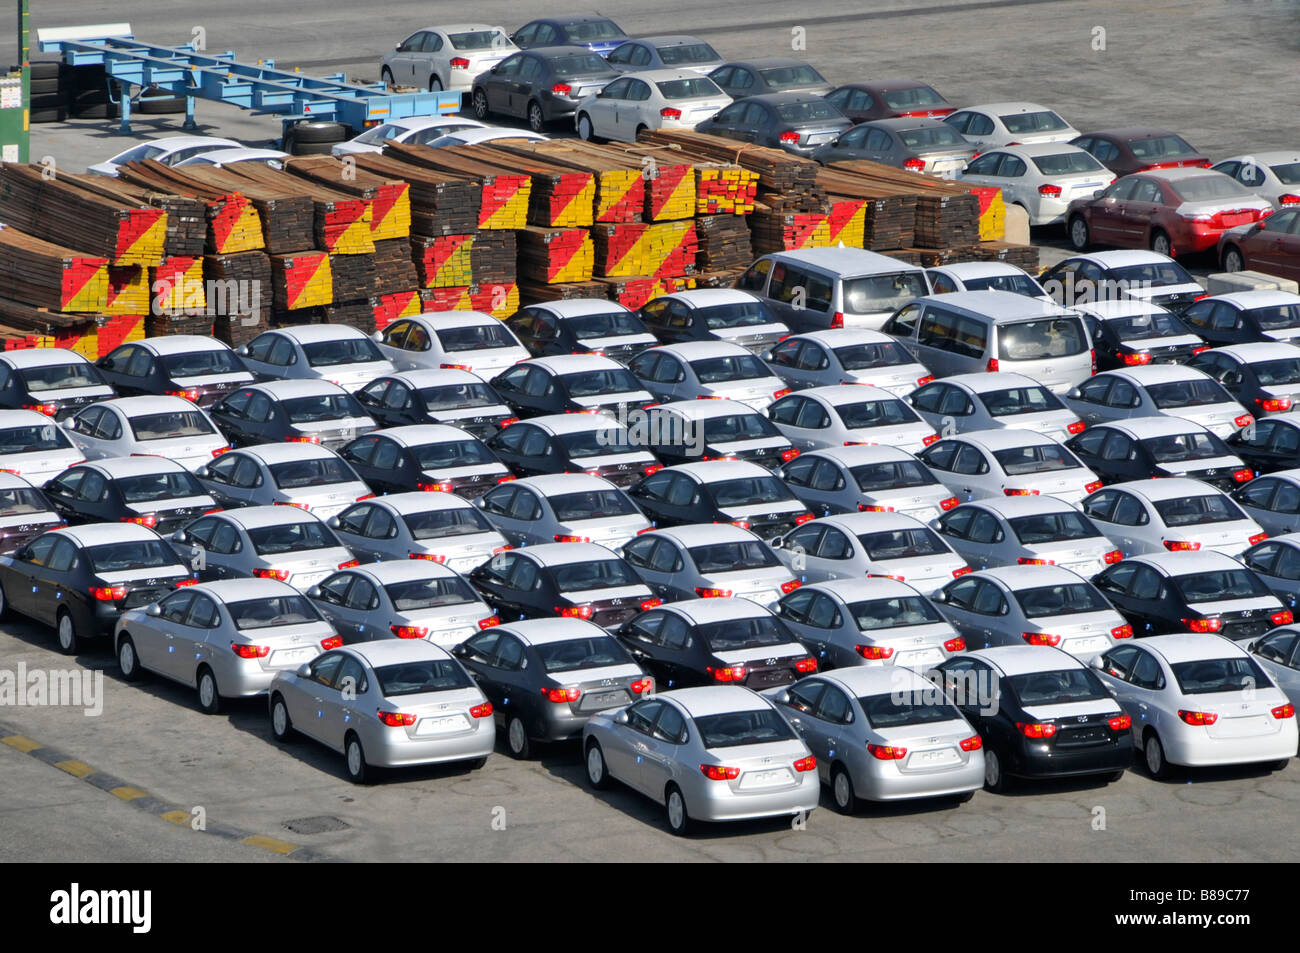 Bahrain looking down close up on dockside storage of imported new cars and large piles of timber awaiting distribution - Stock Image